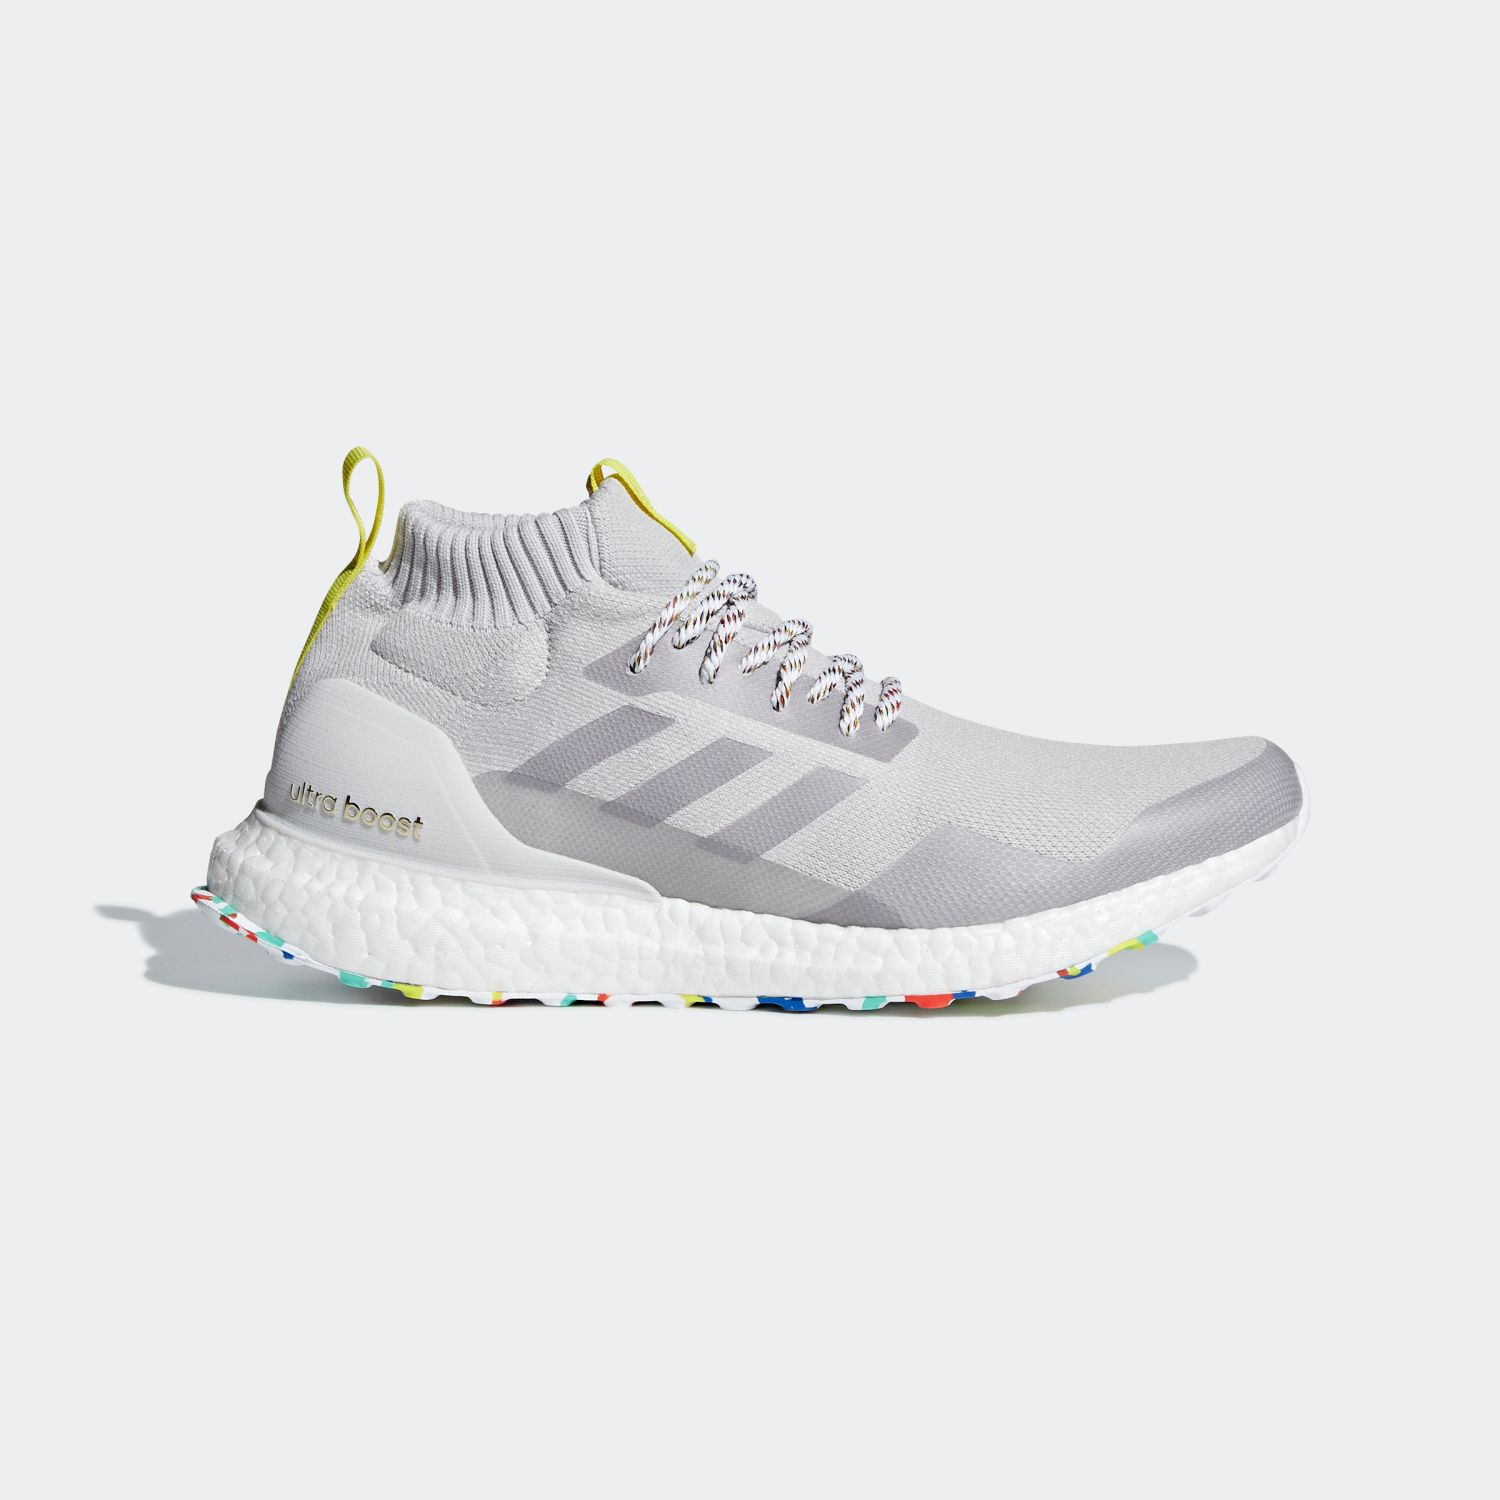 adidas-ultra-boost-mid-new-color-release-201810